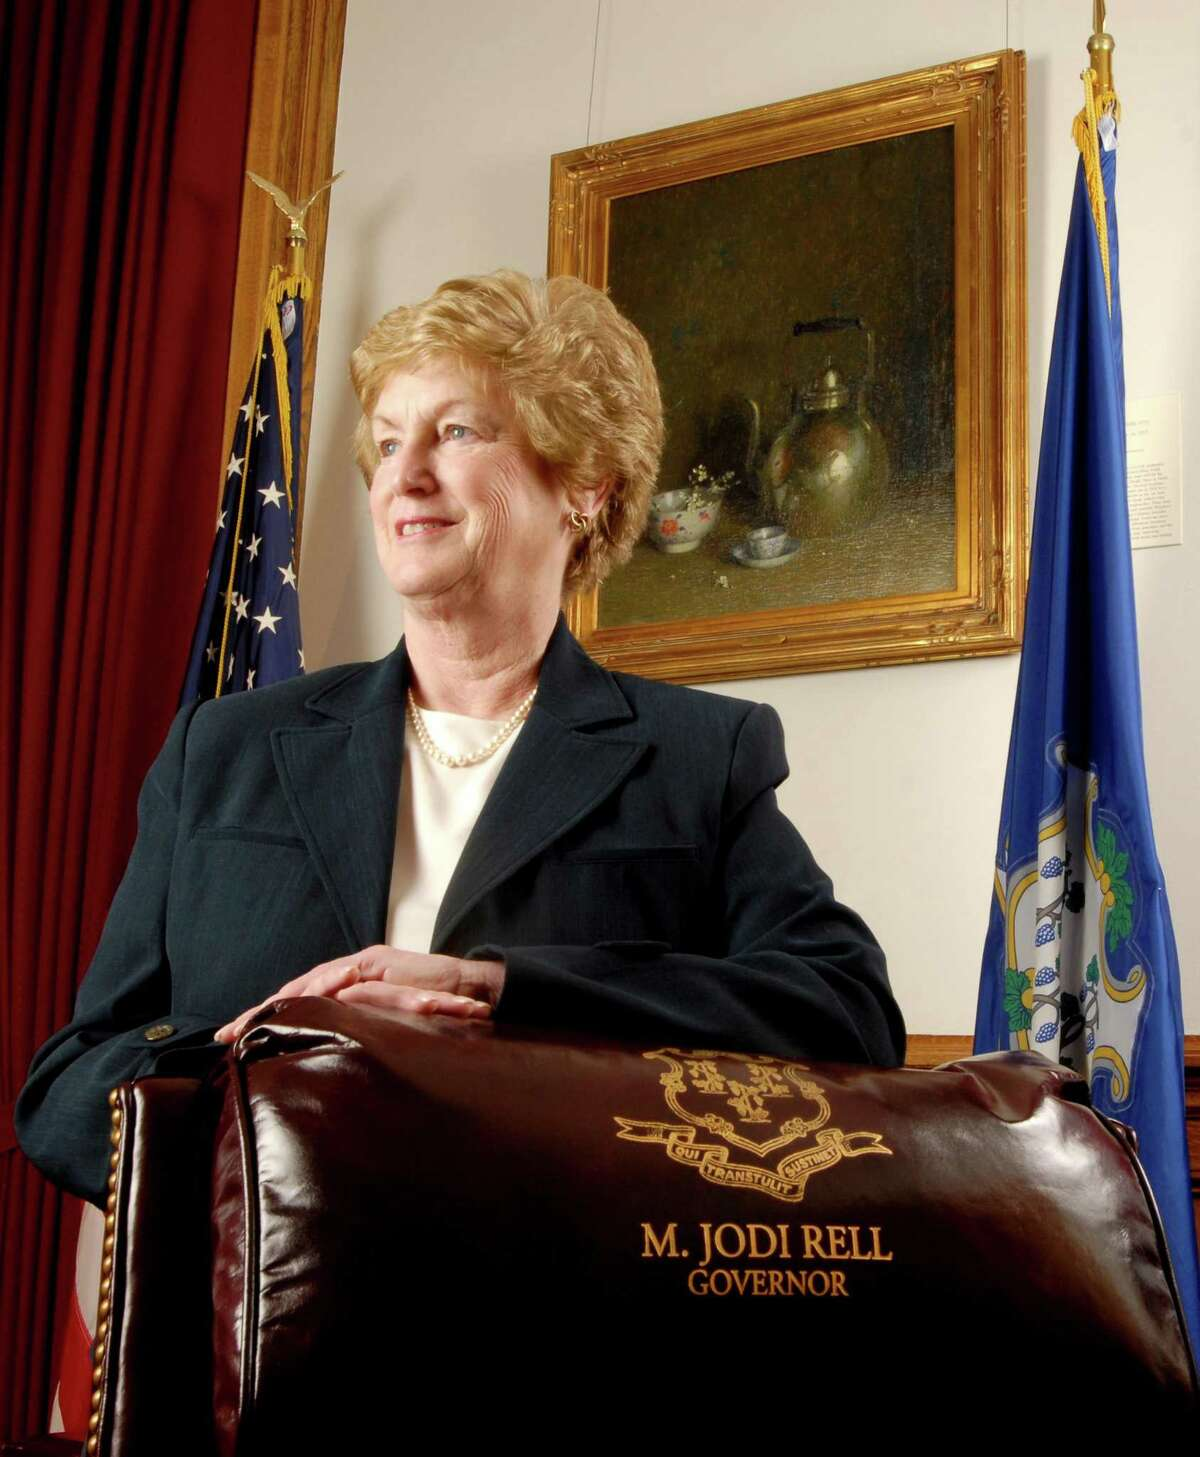 Connecticut Gov. M. Jodi Rell in her office at the State Capitol in 2007.